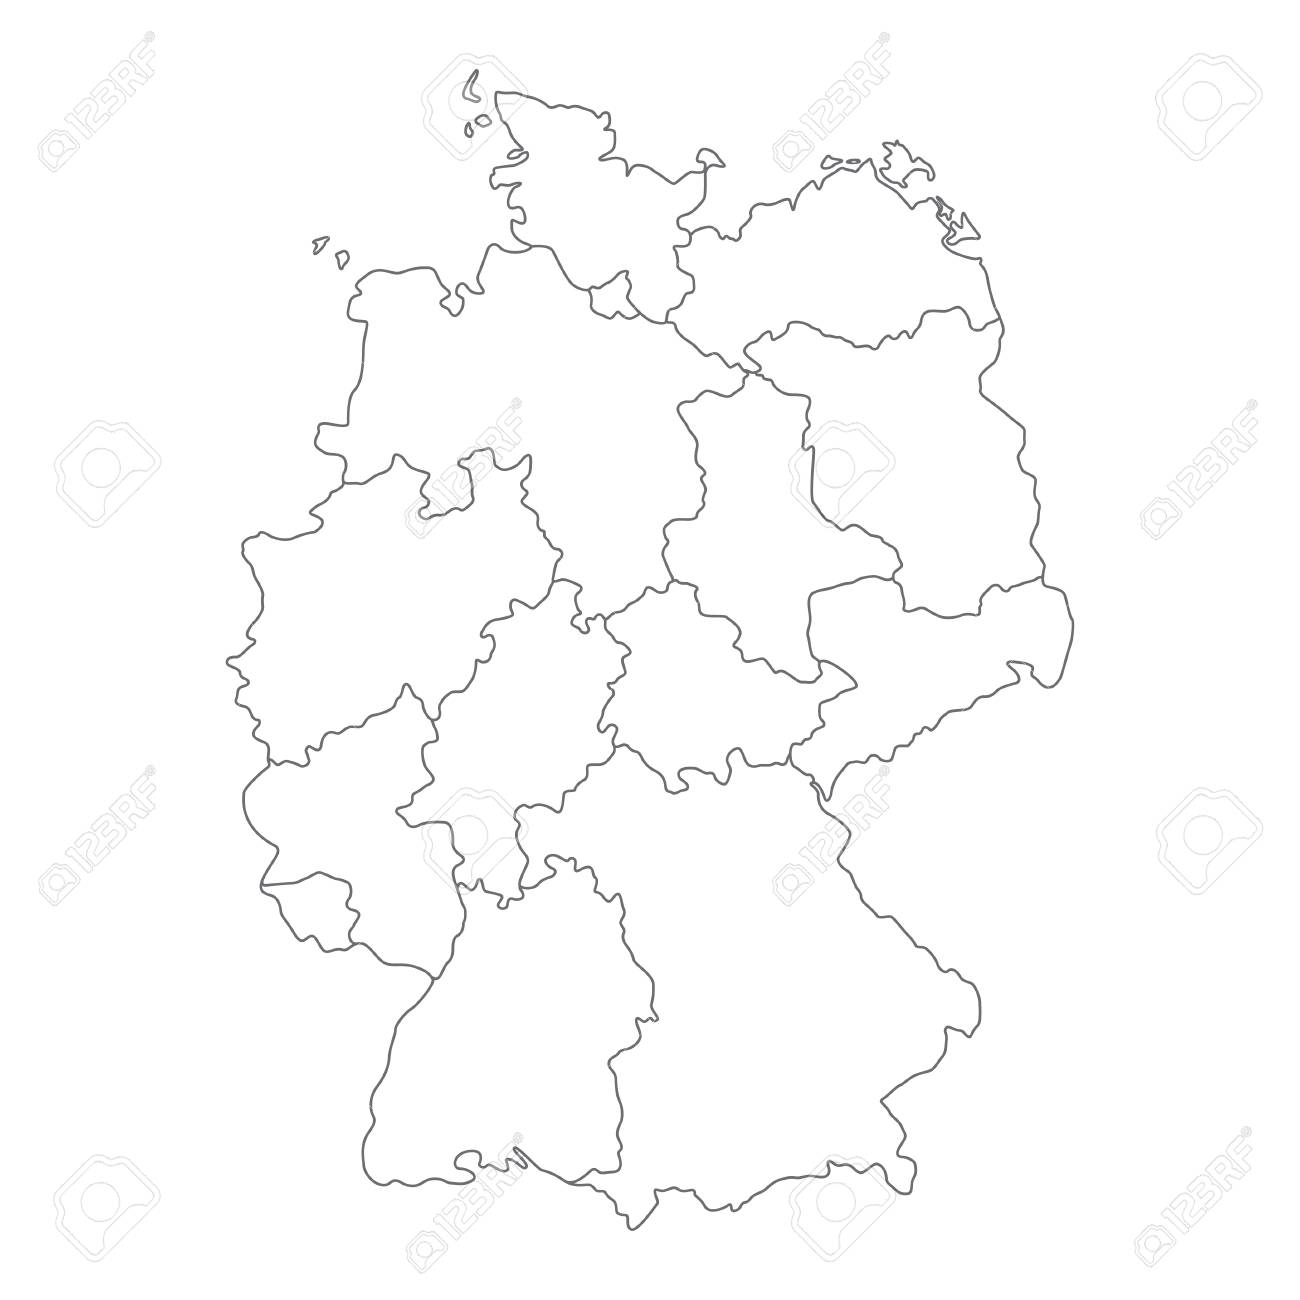 Map Of Germany Divided.Map Of Germany Divided To Federal States And City States Simple